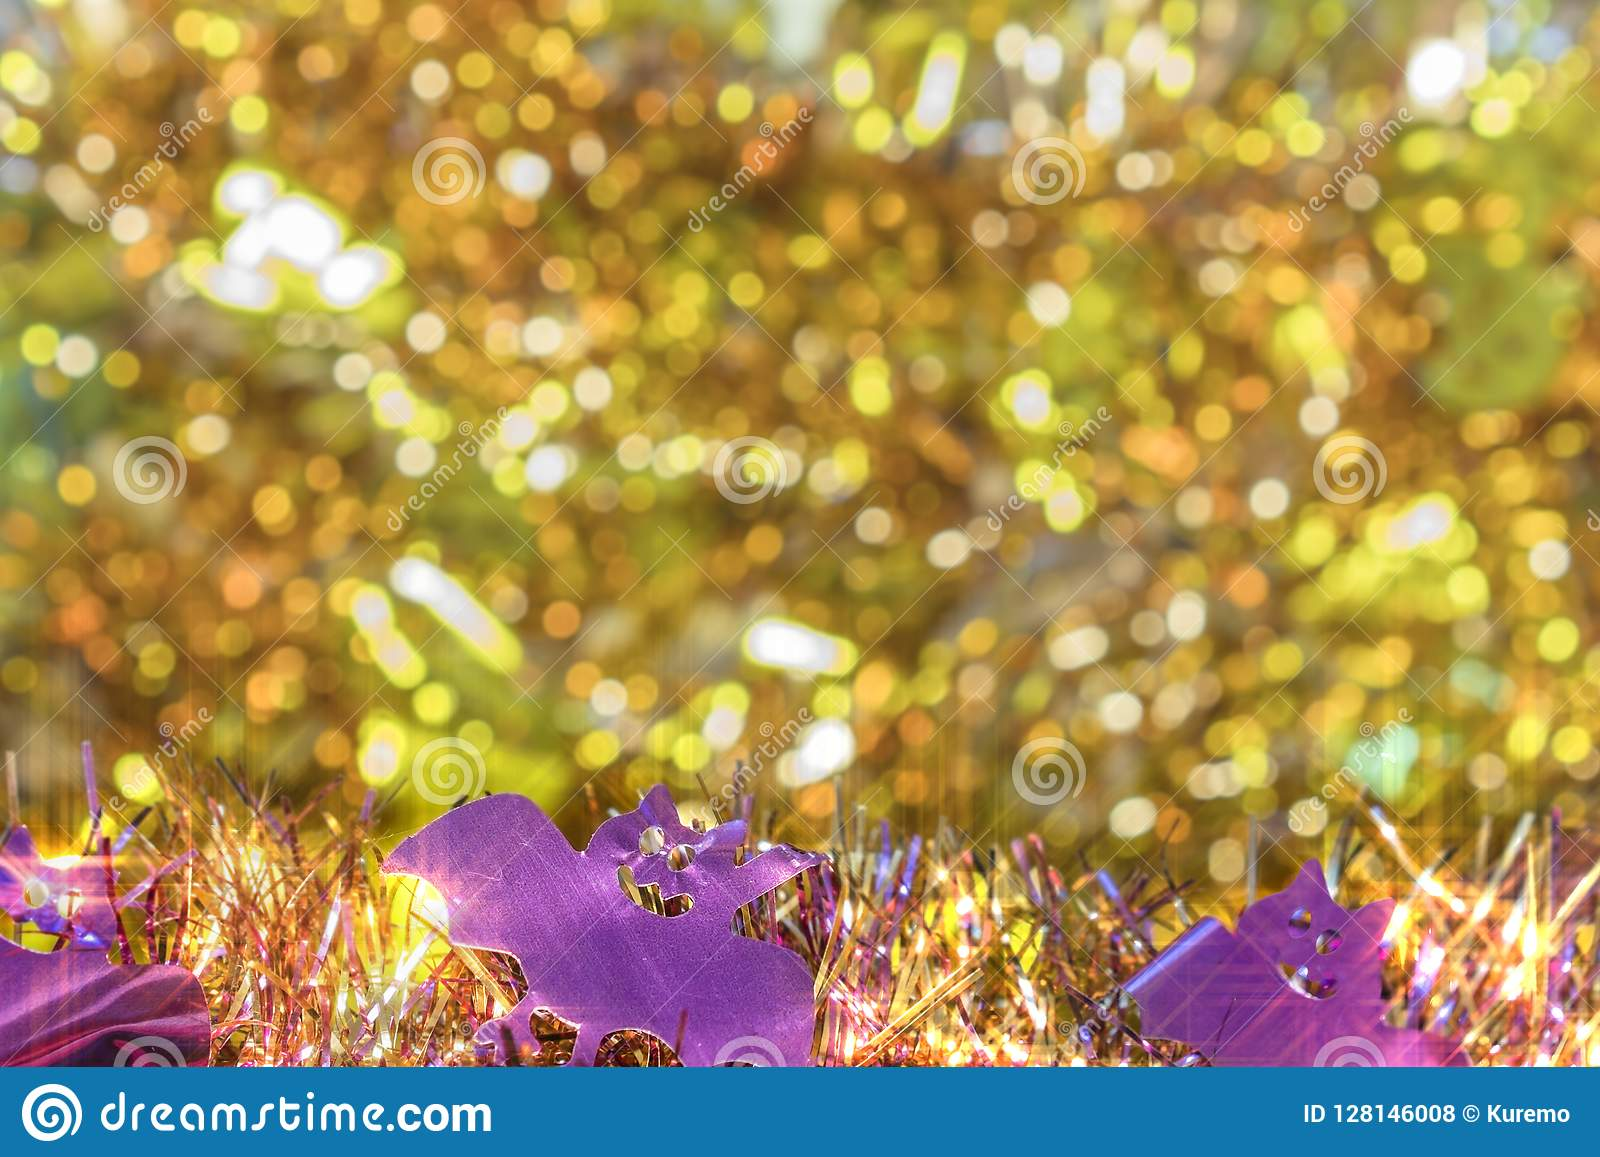 Background texture full of small golden bokeh with garlands decorated of purple smiling bats faces in foreground to celebrate